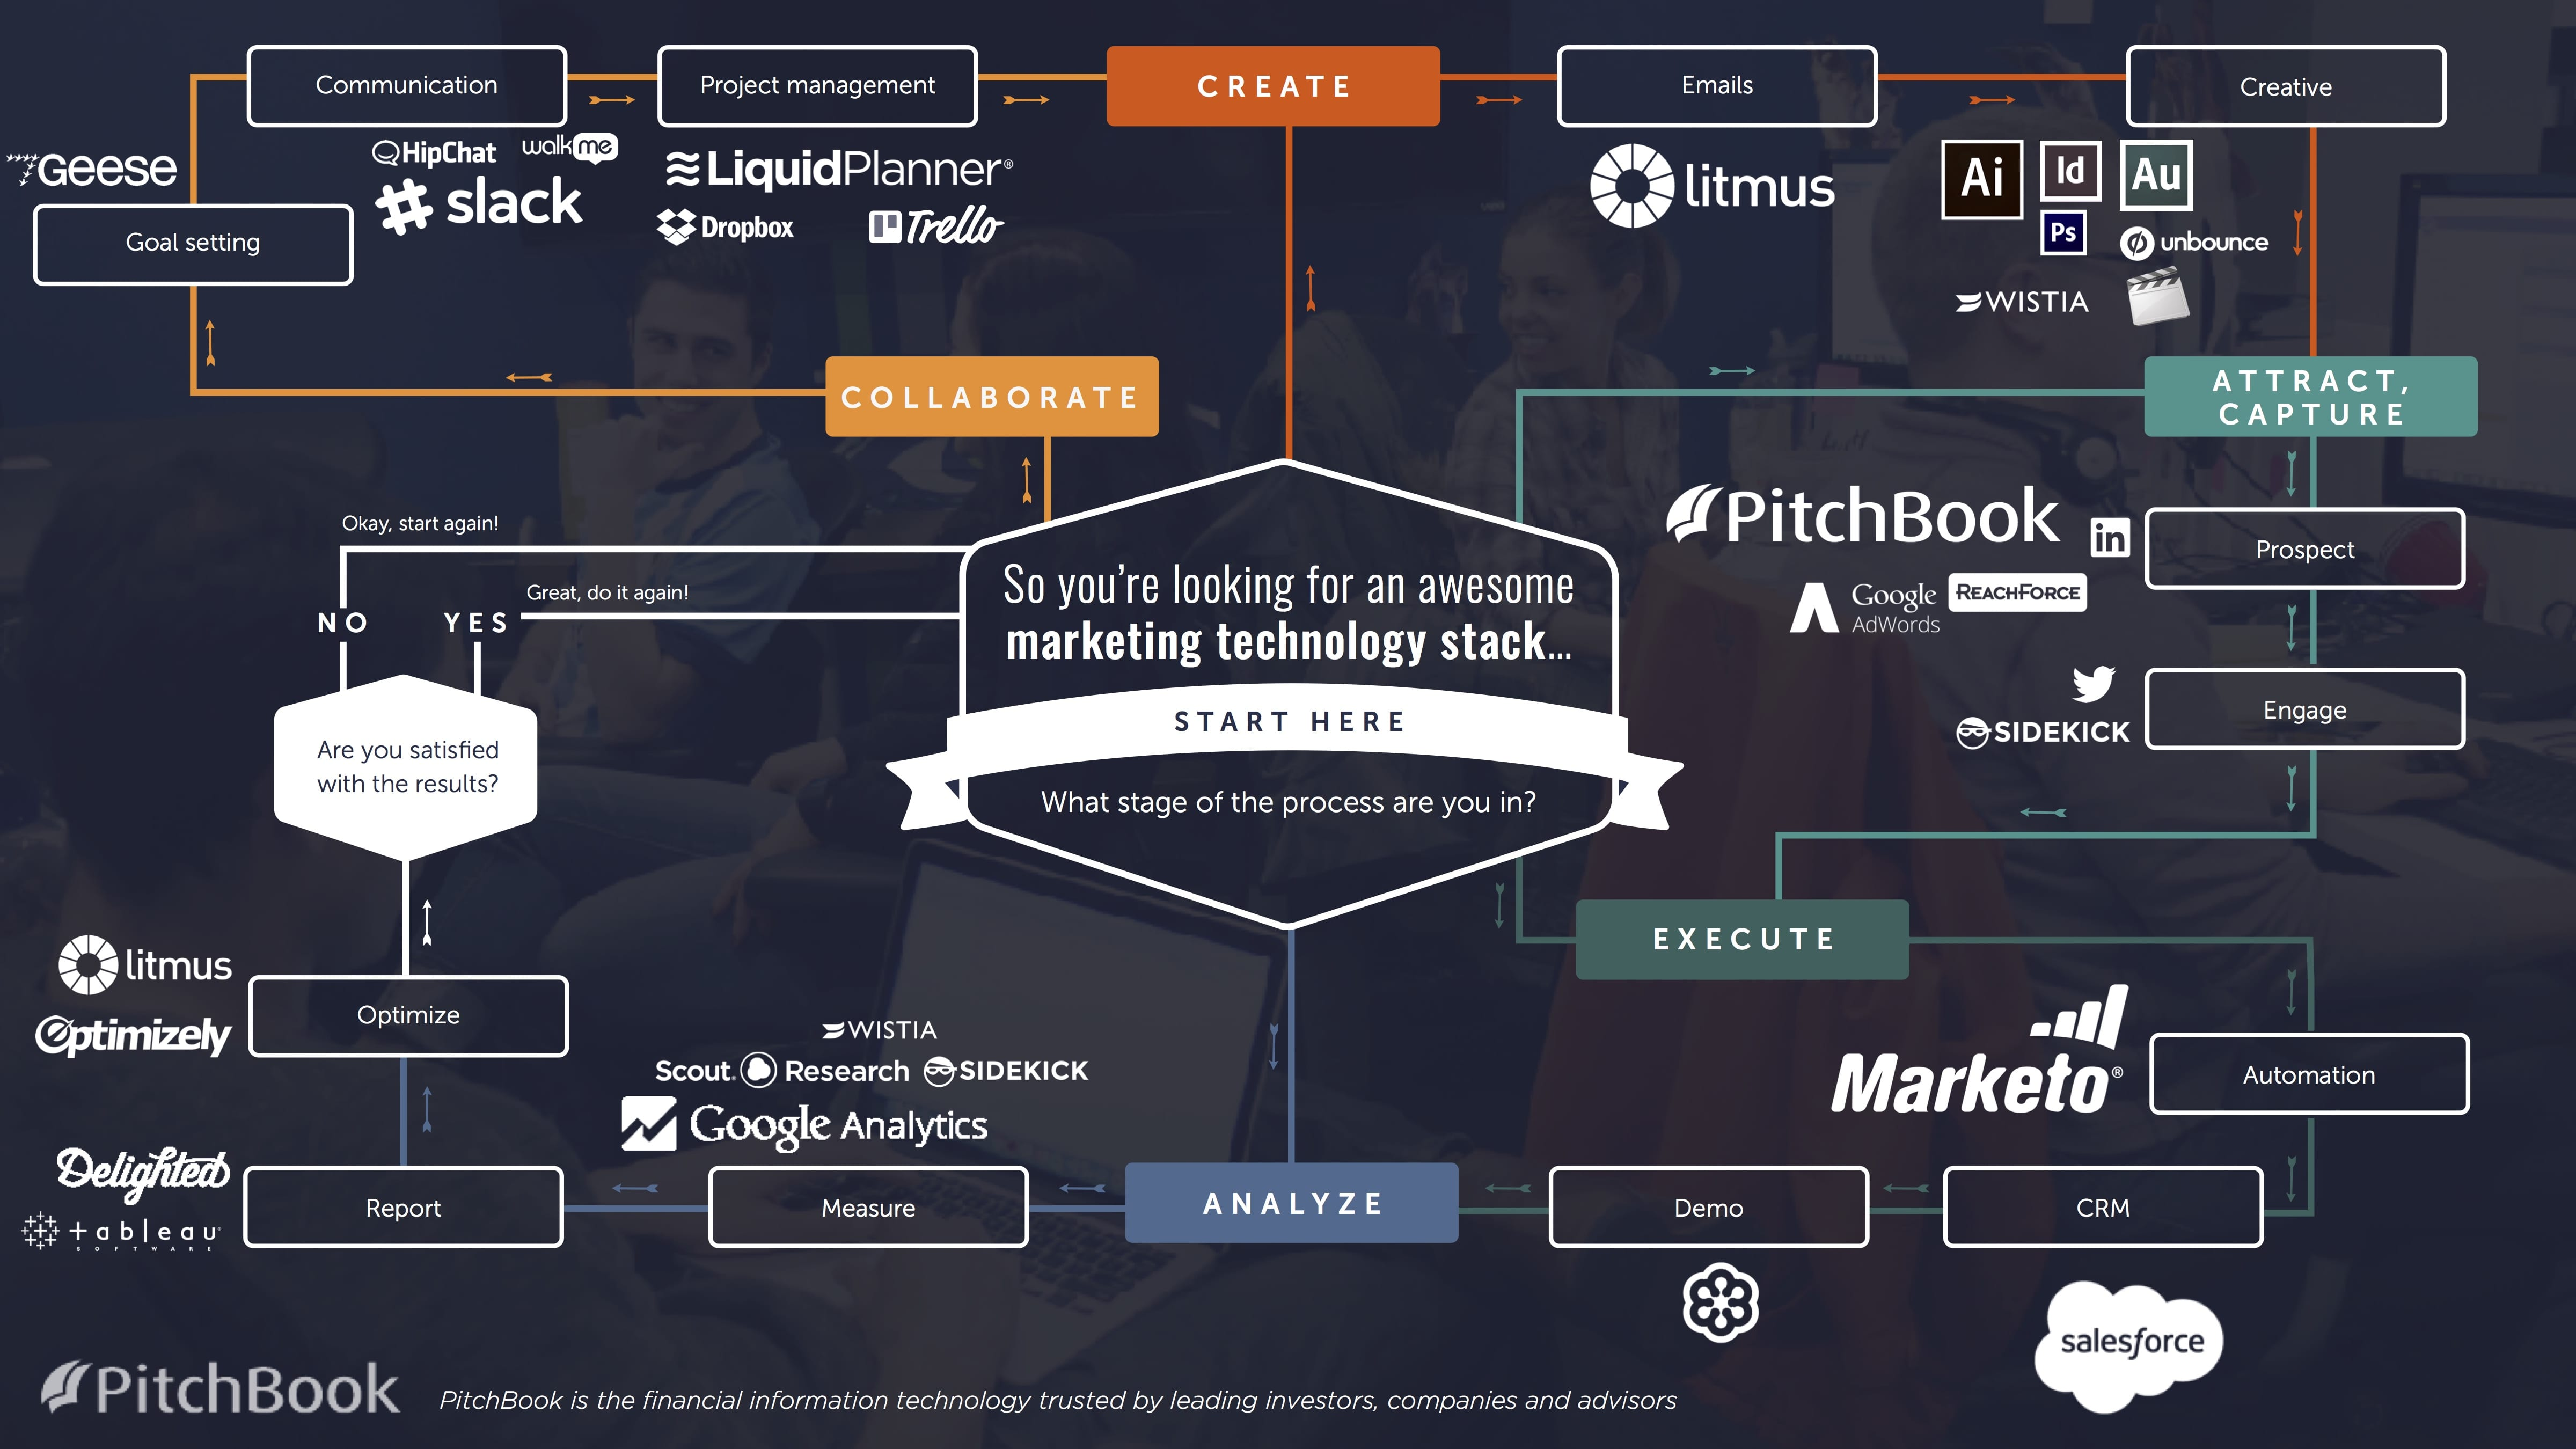 Marketing technology stack flow